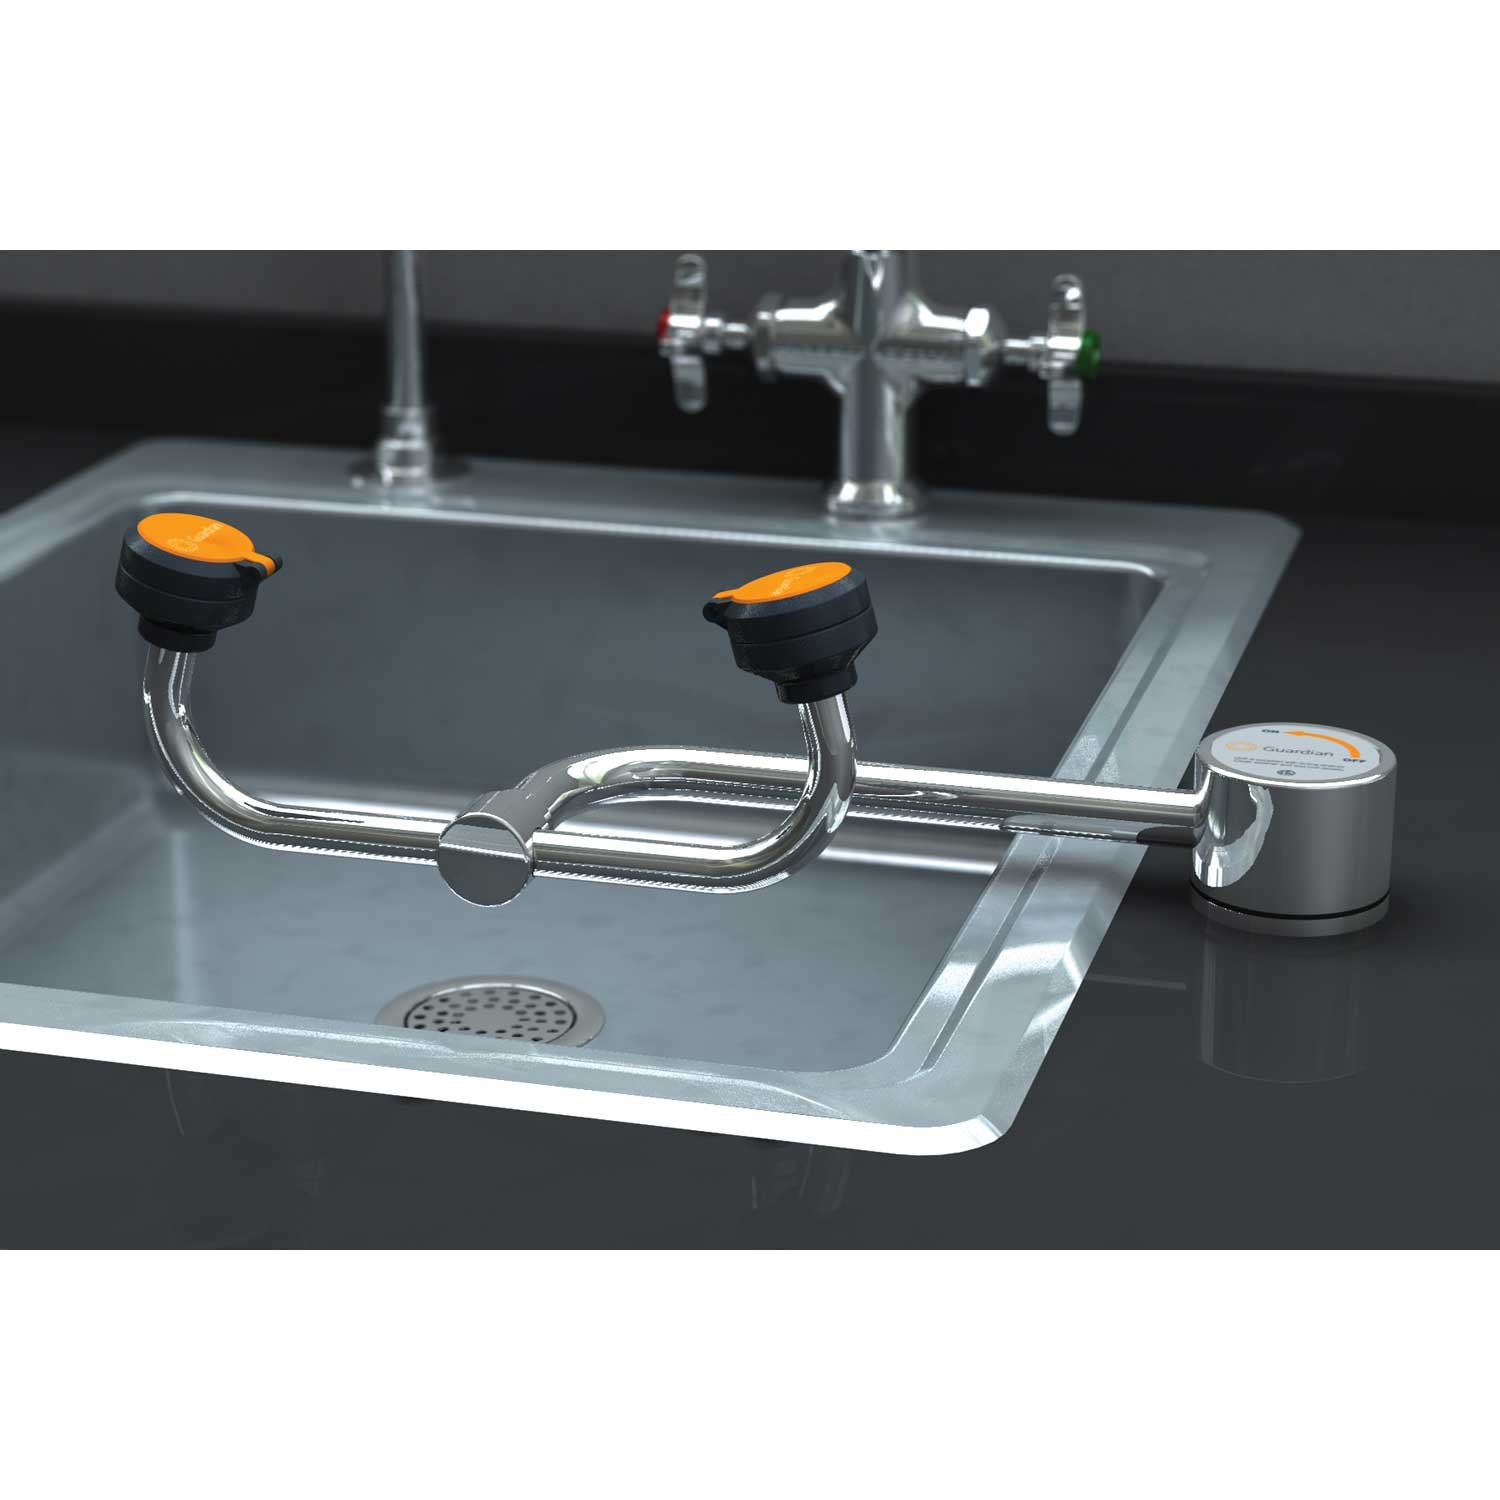 Guardian G1805 AutoFlow 90 Degree Swivel Deck-Mounted Eyewash, Right Hand Mounting by Guardian